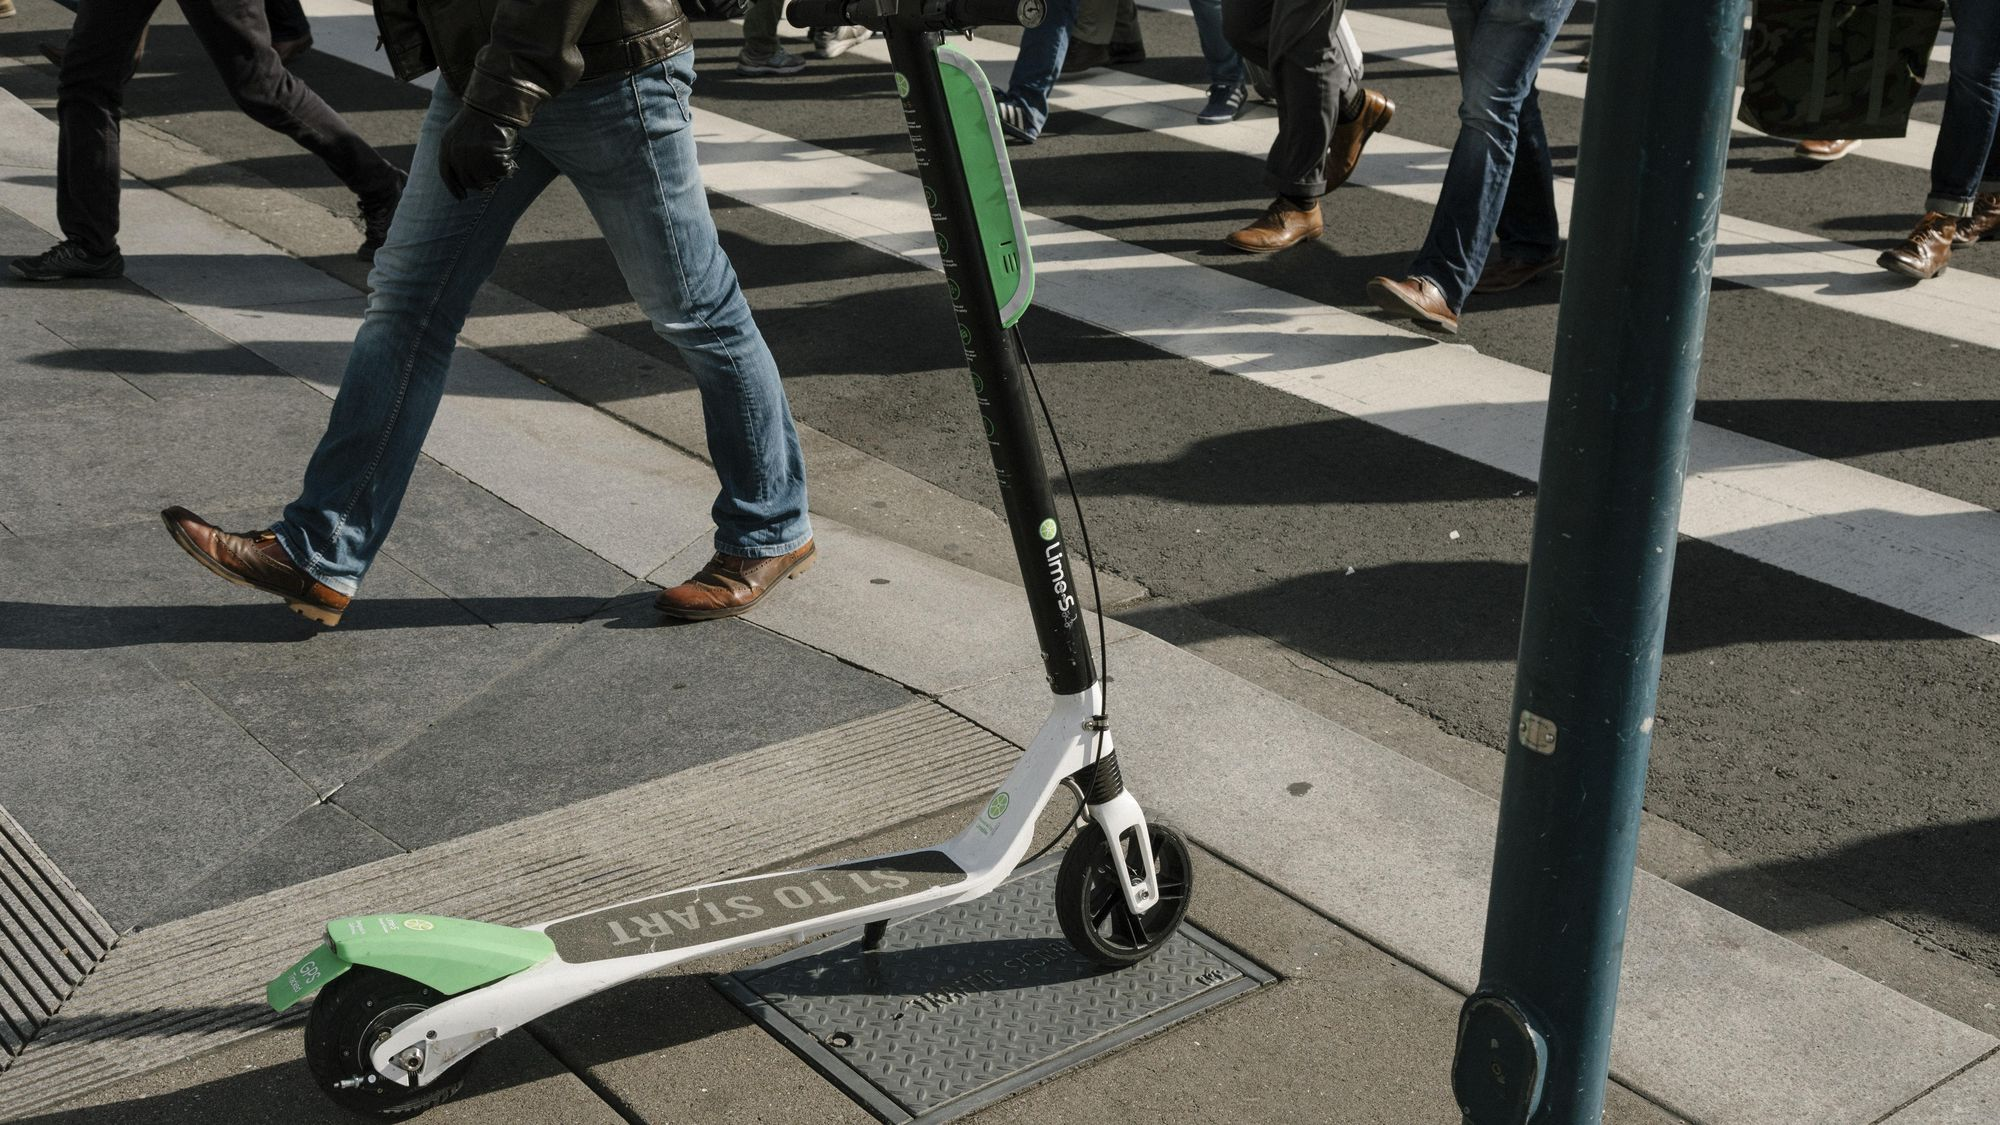 New e-scooter company to replace Bird and Lime in Raleigh :: WRAL com